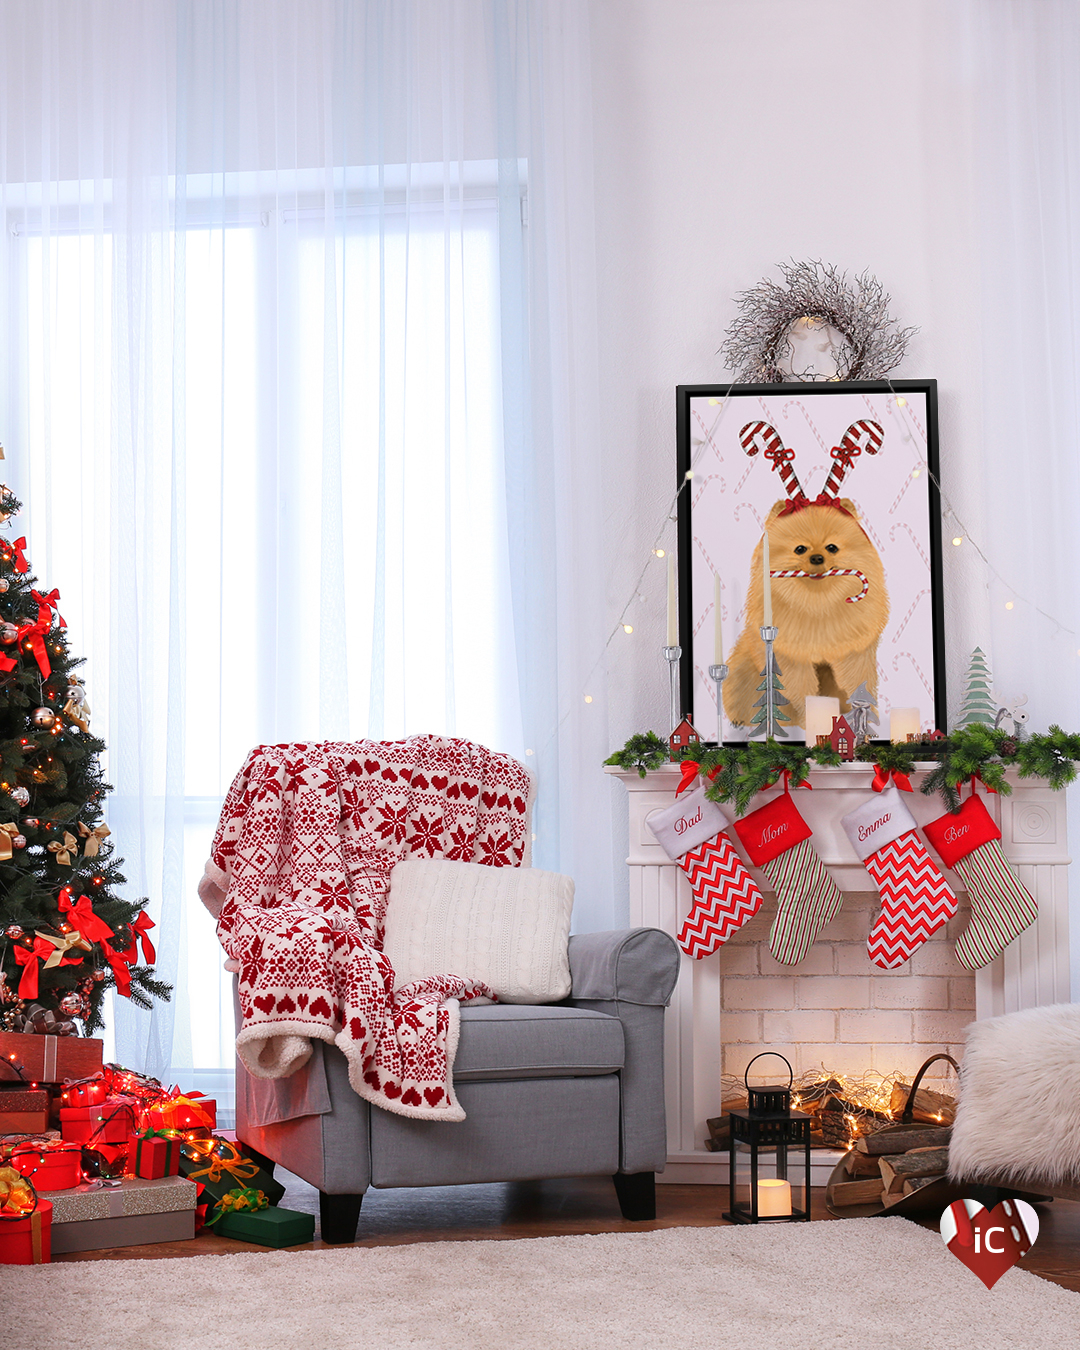 Graphic of a Pomeranian wearing a candy cane hat with a candy cane in its mouth framed on a mantle in a living room with a Christmas tree, presents, and a holiday blanket